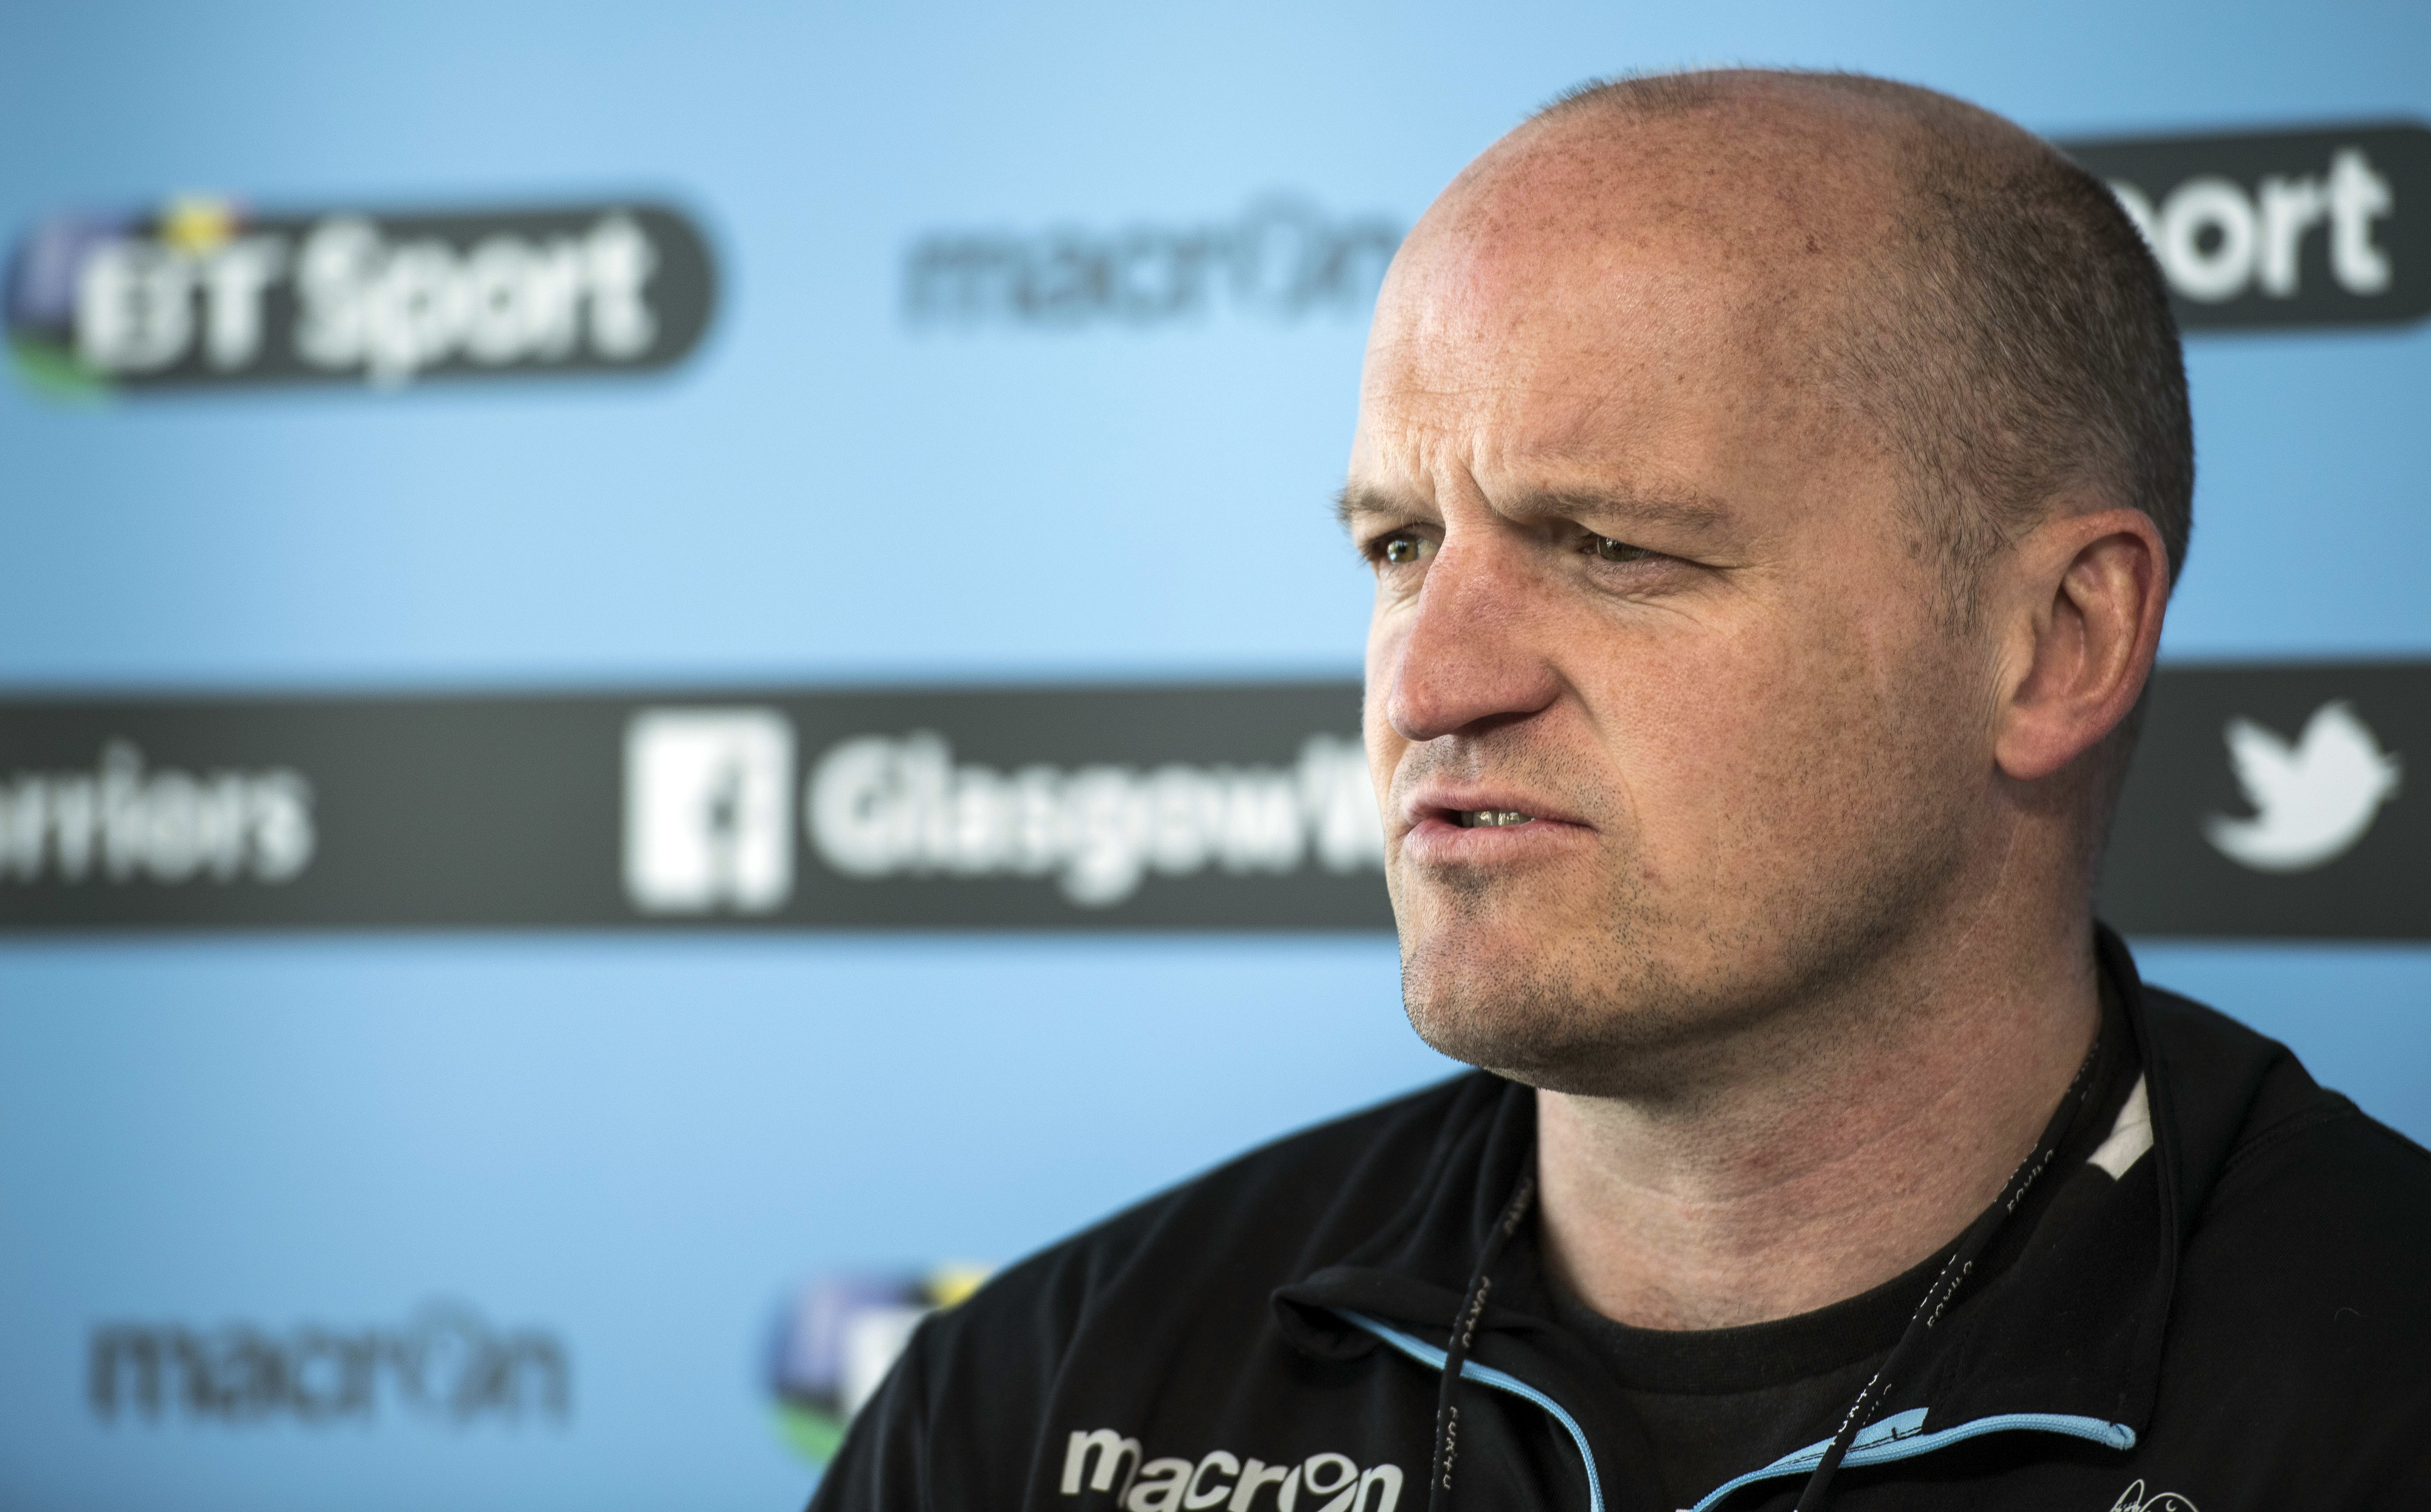 Glasgow Warriors head coach Gregor Townsend's final match in charge is the 1872 Cup clash with Edinburgh.